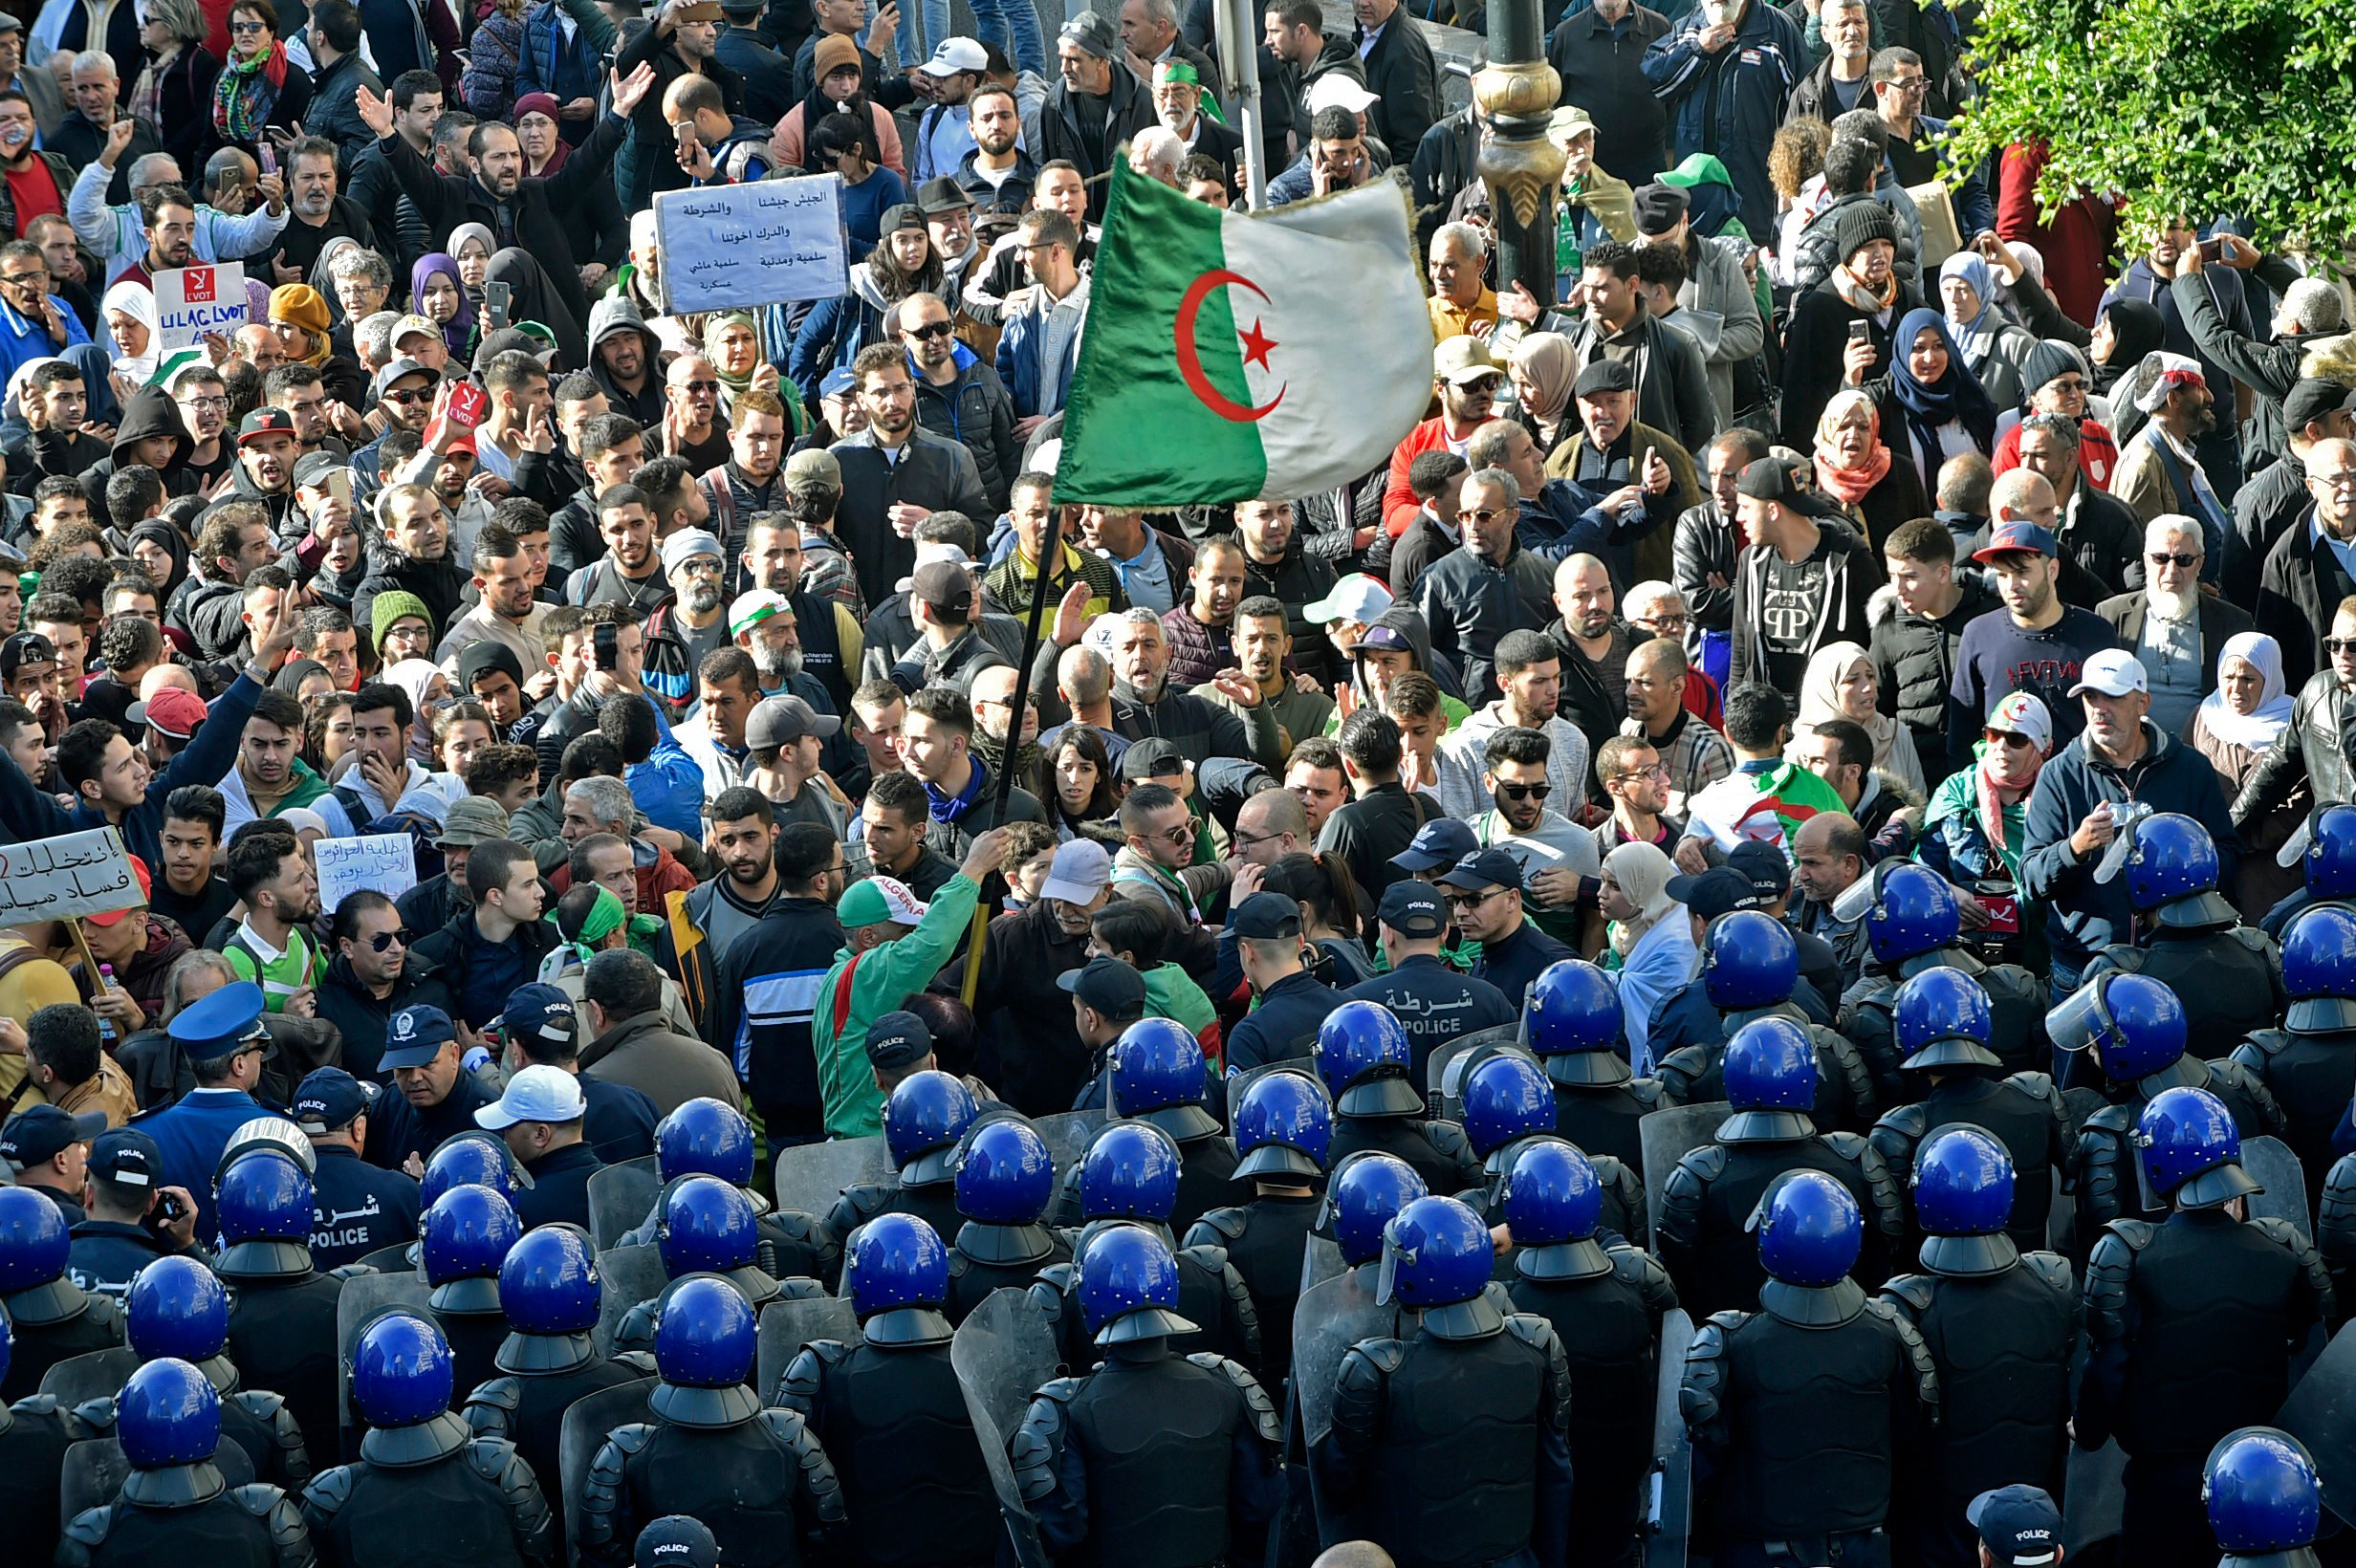 Algerian security surround protesters during an anti-government demonstration in the capital Algiers on December 11, 2019, ahead of the presidential vote scheduled for December 12. vote.